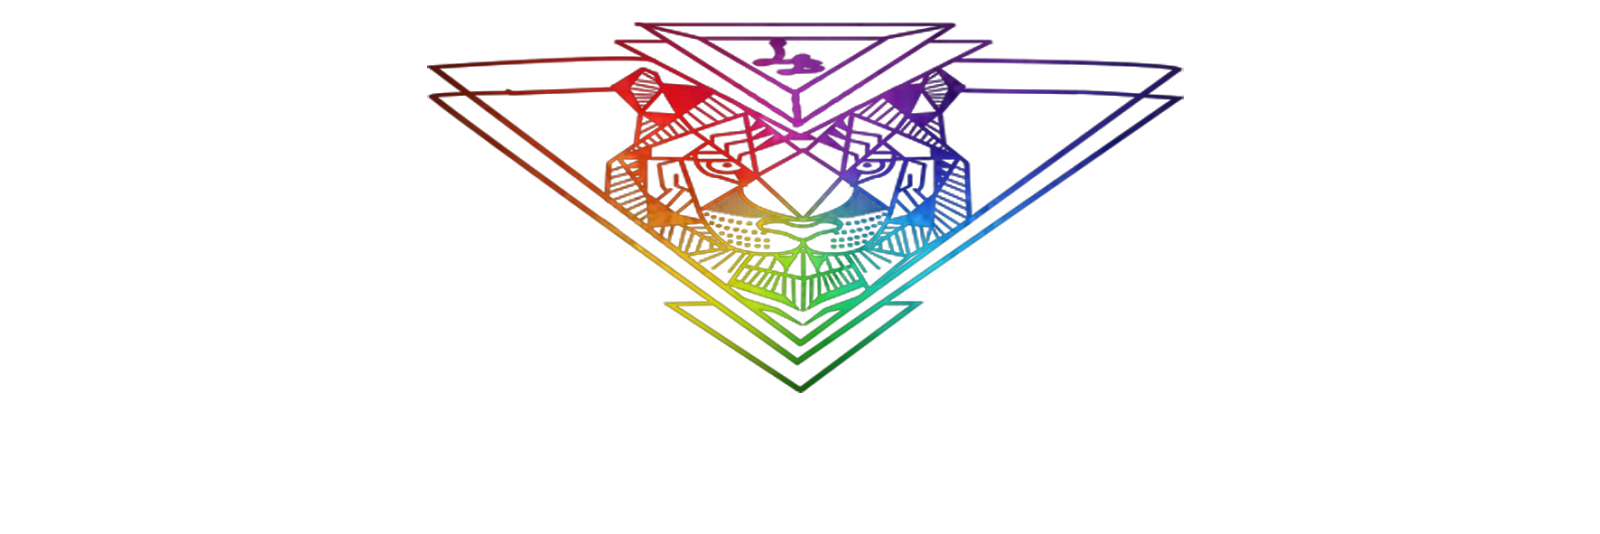 Laura boots, Computer Animation arts, UCA Rochester